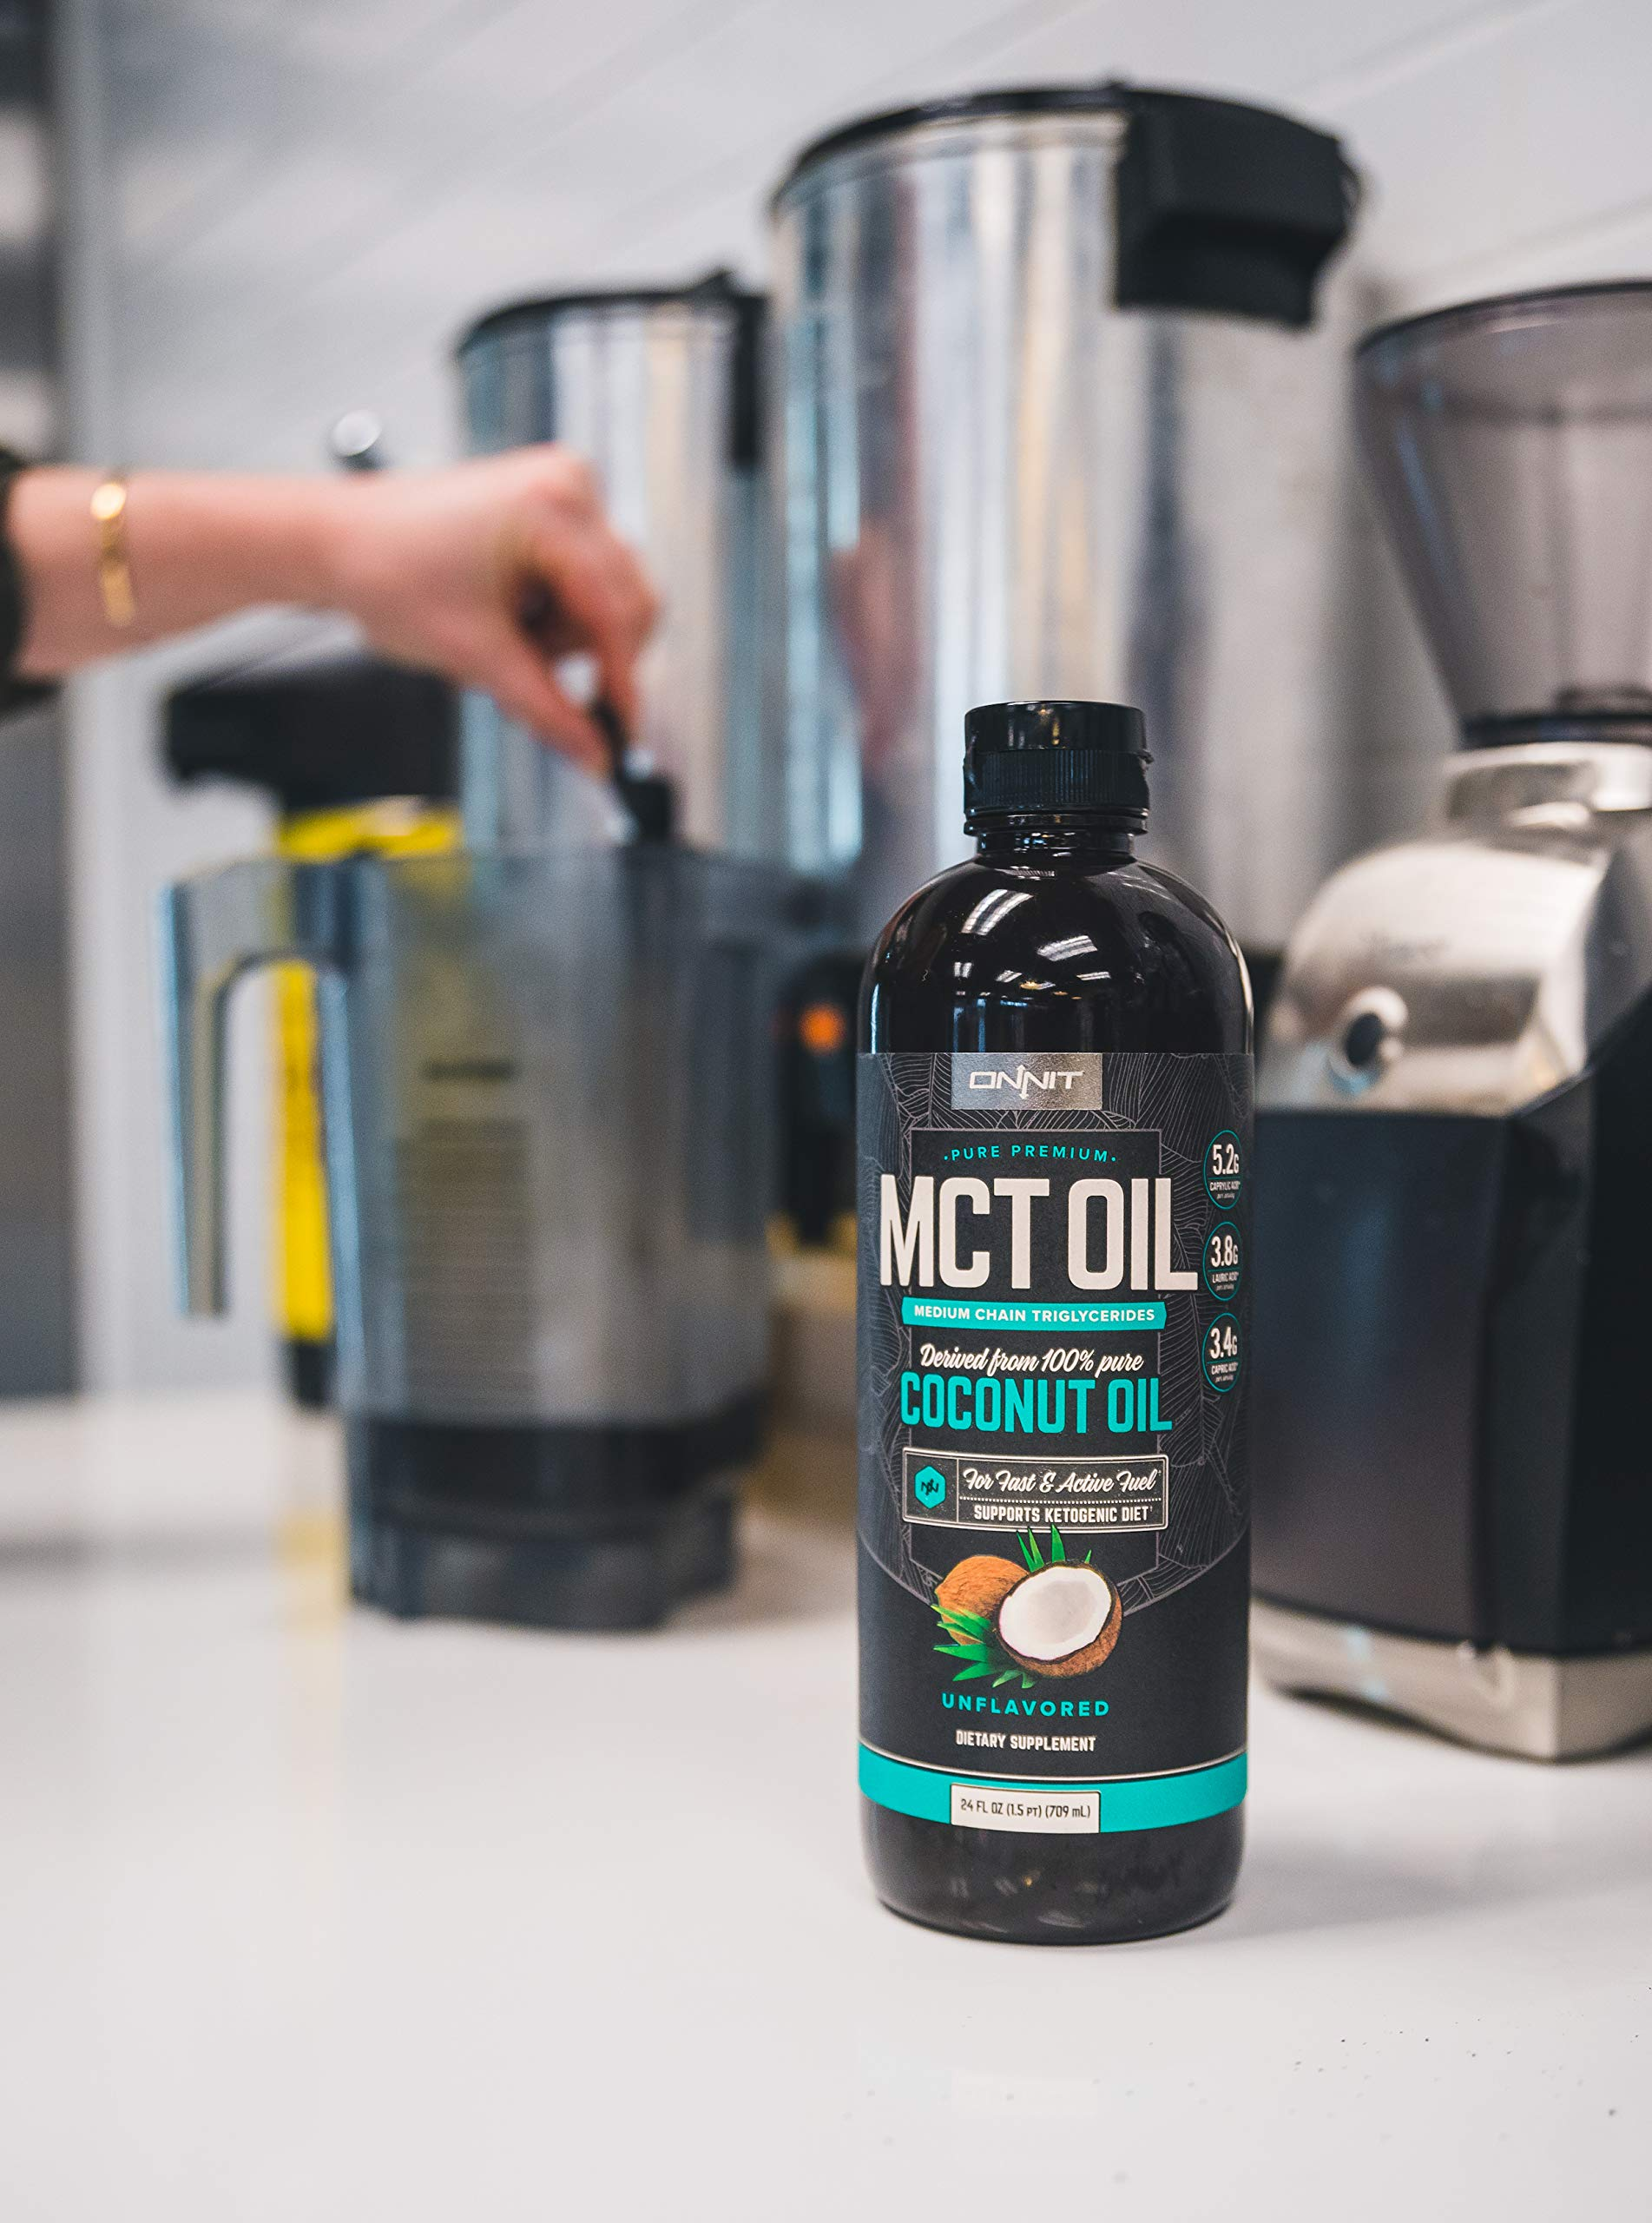 Onnit MCT Oil - Pure MCT Coconut Oil, Ketogenic Diet and Paleo Optimized with C8, C10, Lauric Acid - Perfect for Coffee, Shakes, and Cooking (Flavorless - 24oz) by ONNIT (Image #5)